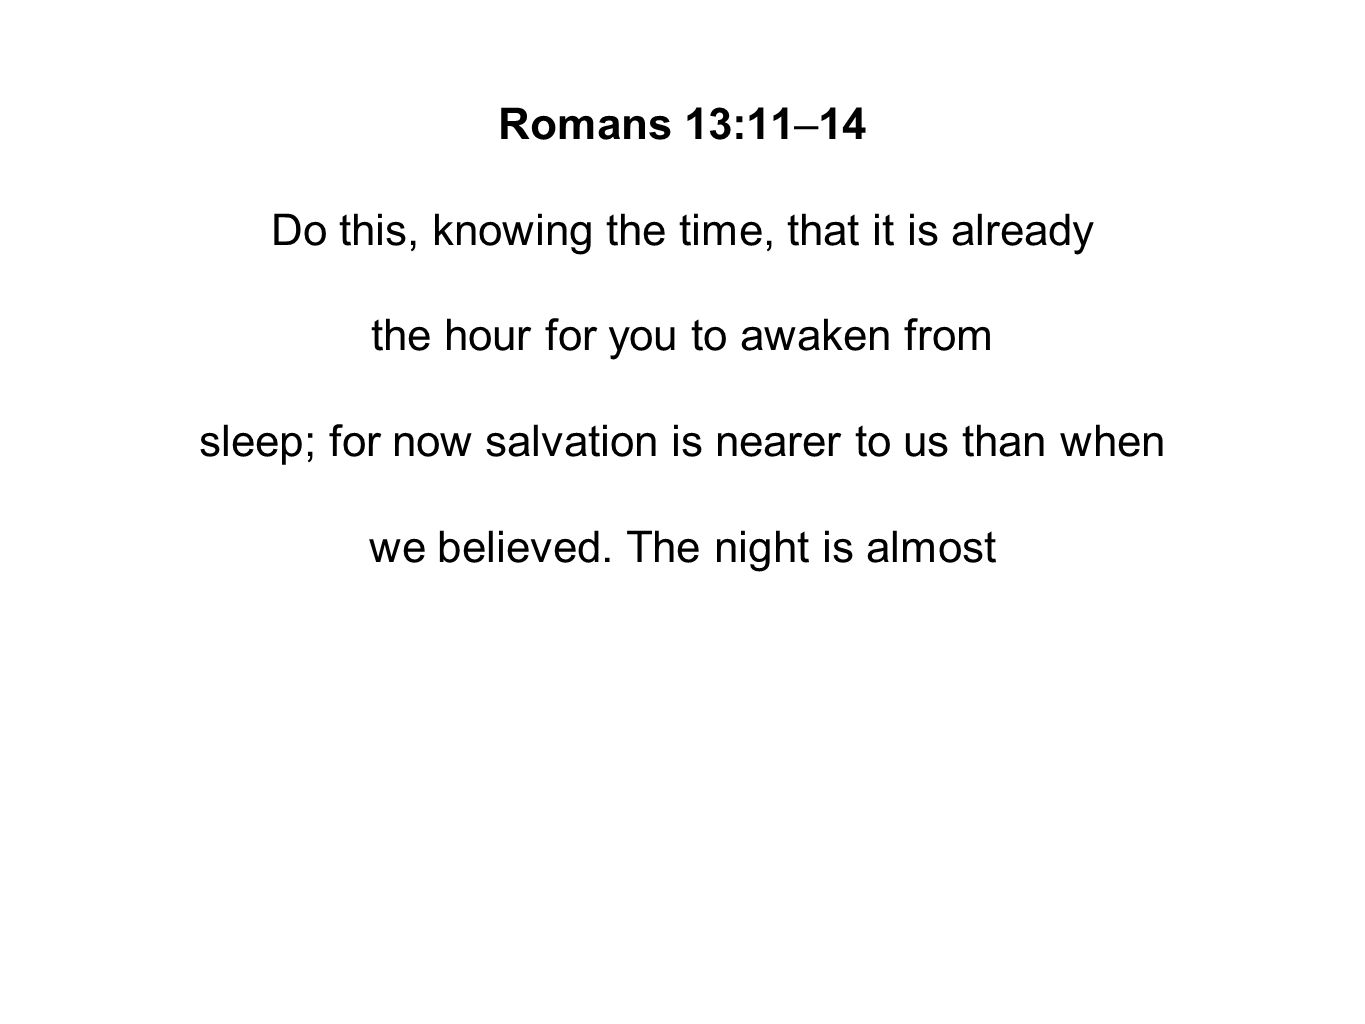 Romans 13:11–14 Do this, knowing the time, that it is already the hour for you to awaken from sleep; for now salvation is nearer to us than when we believed.